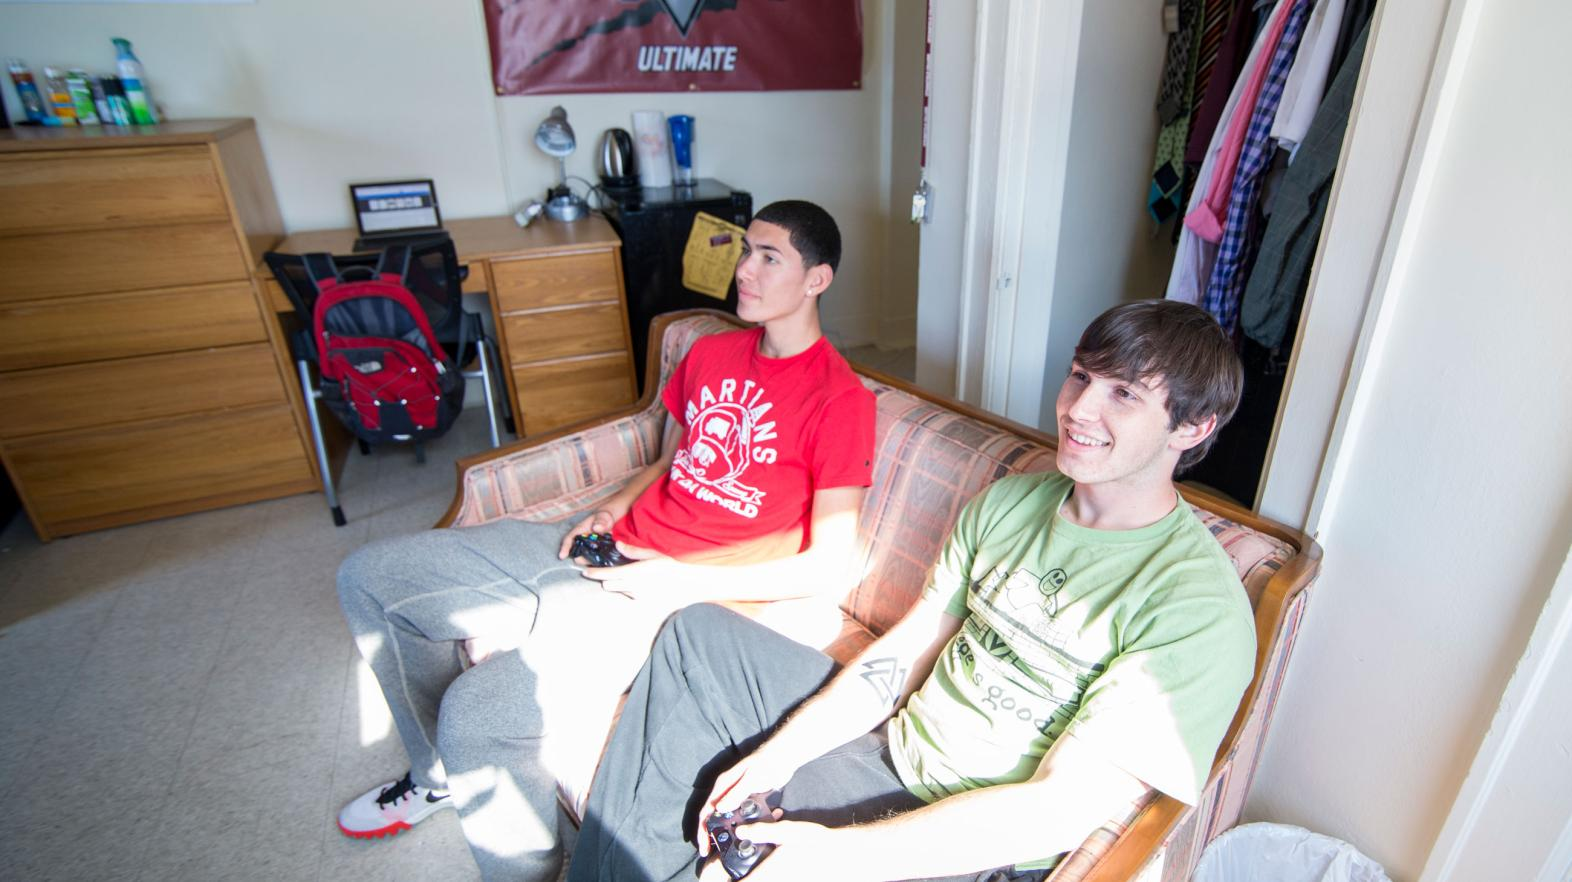 Two students play video games in their Alumni Hall dorm room.